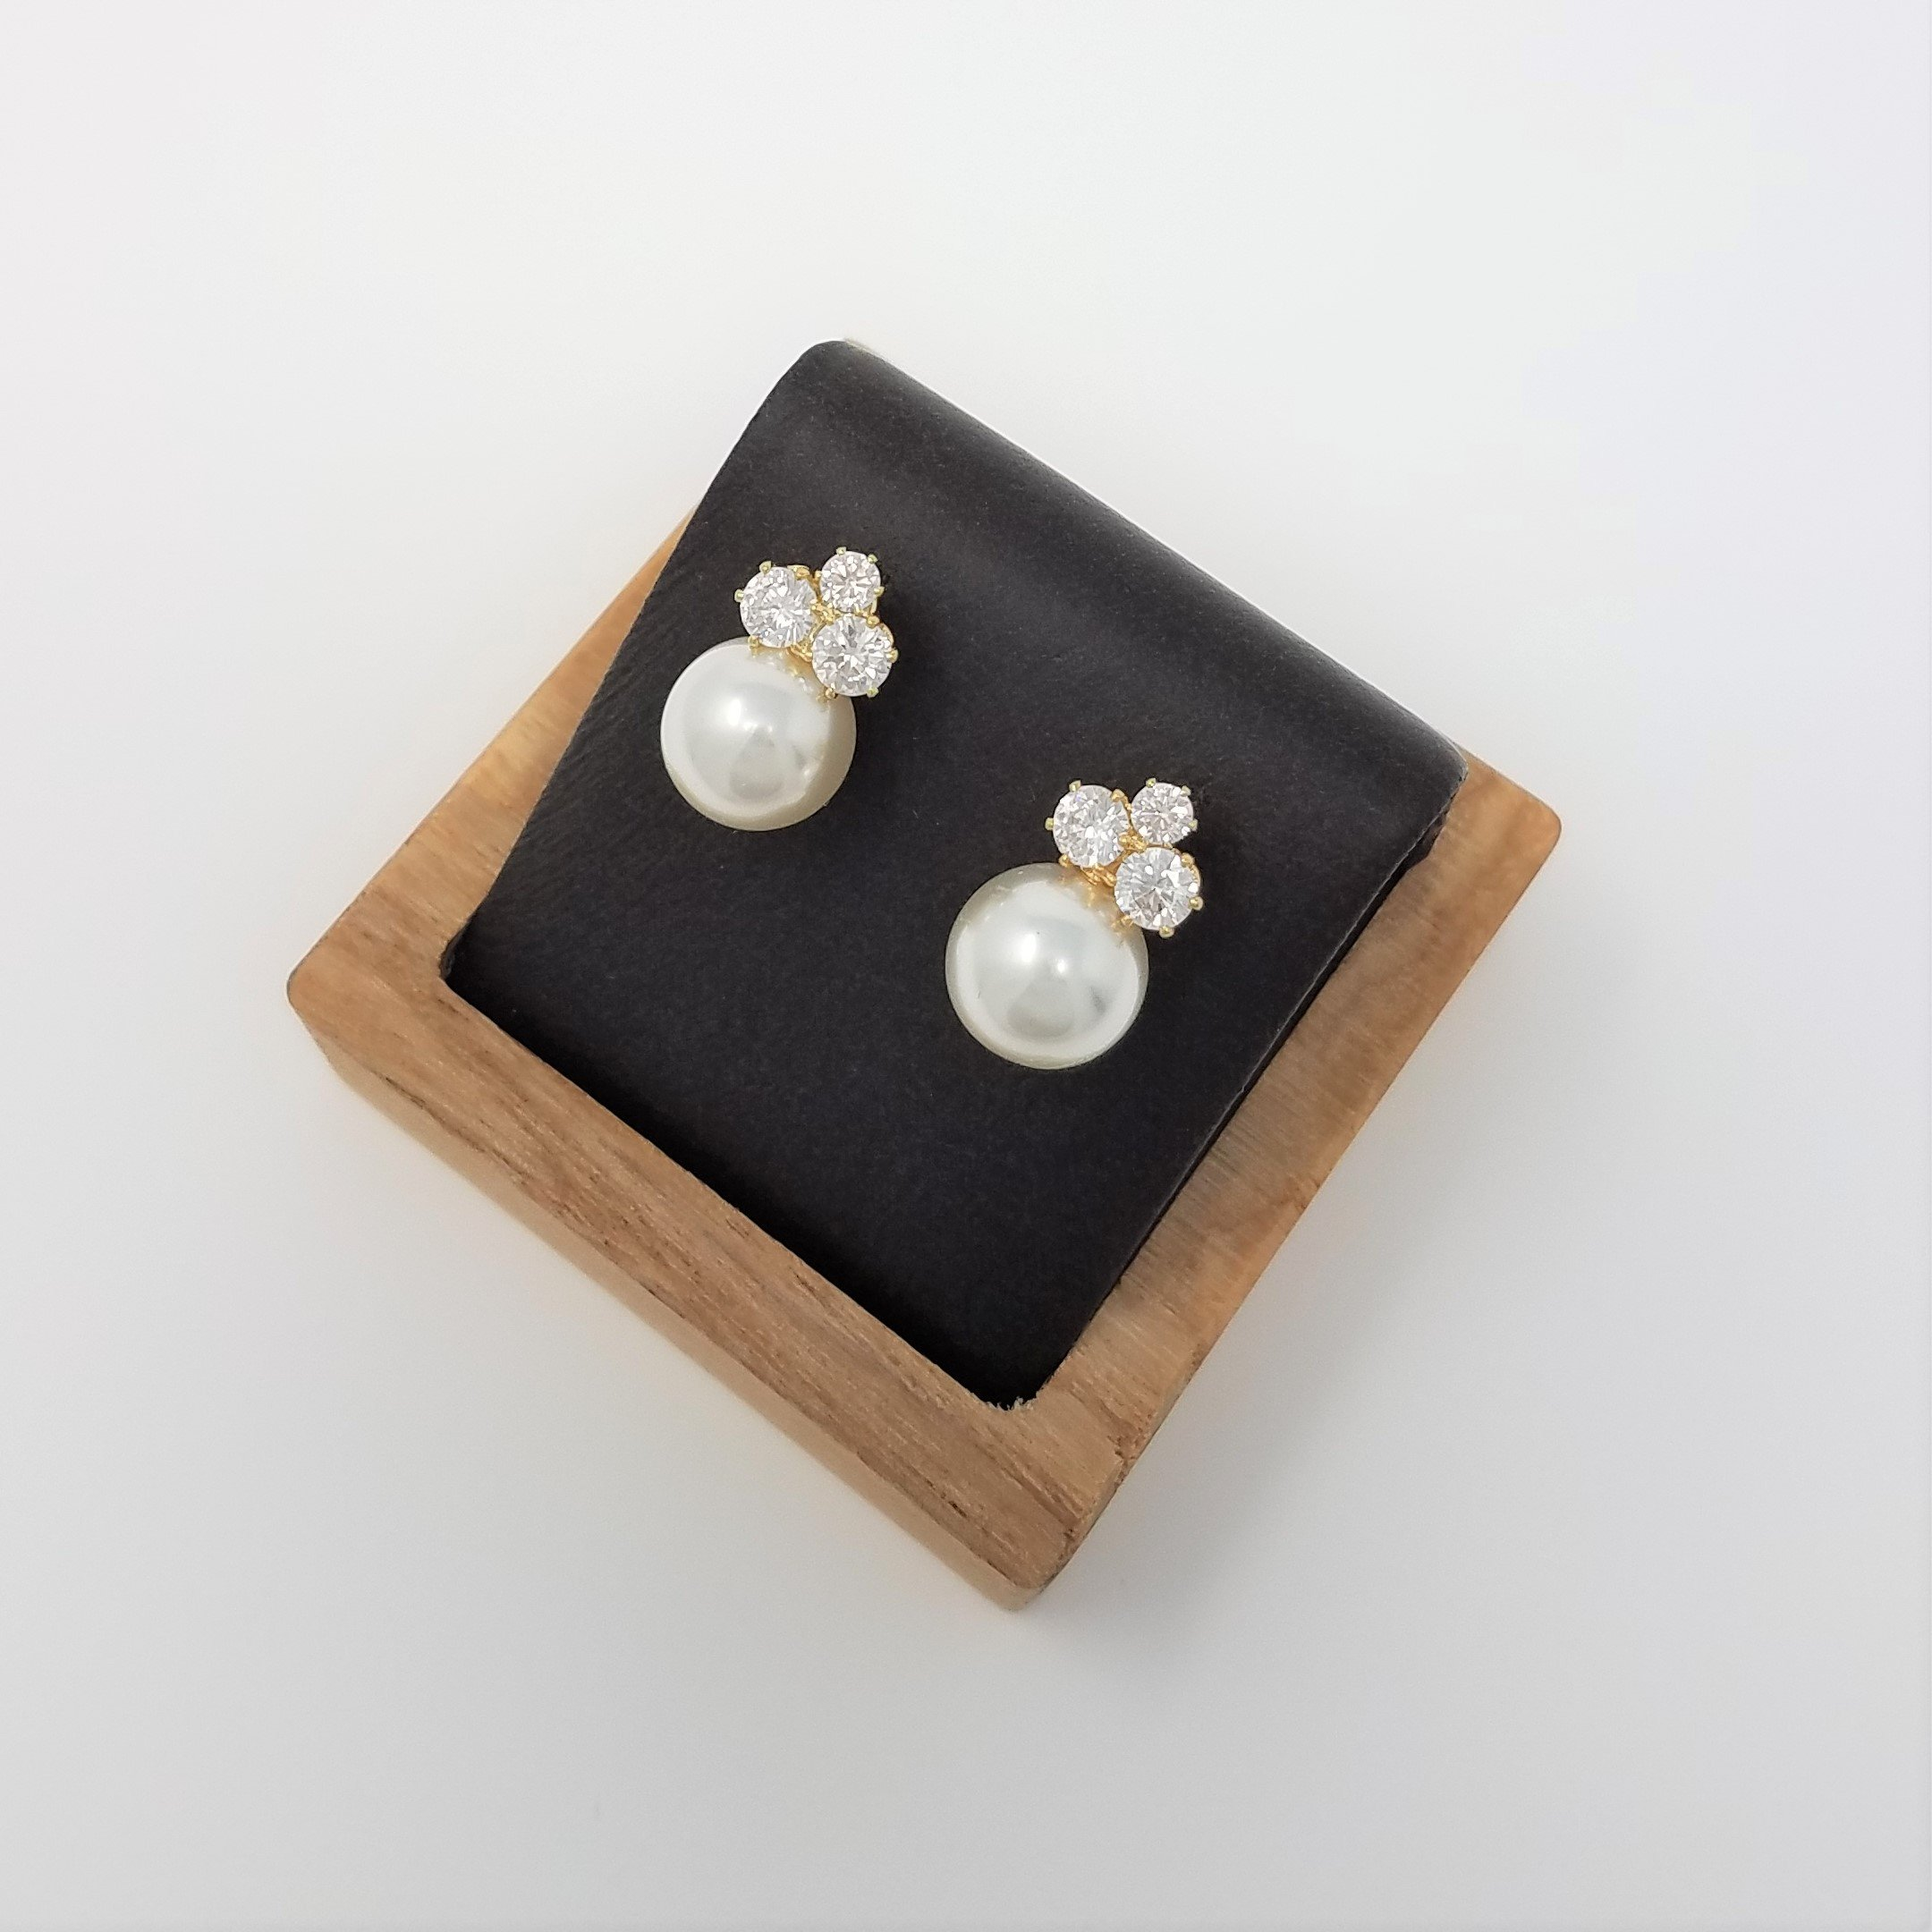 Bridesmaid Gifts - Elegant Pearl & Triple CZ Earrings (8mm, Simulated Pearl) by Bride Dazzle (Image #3)